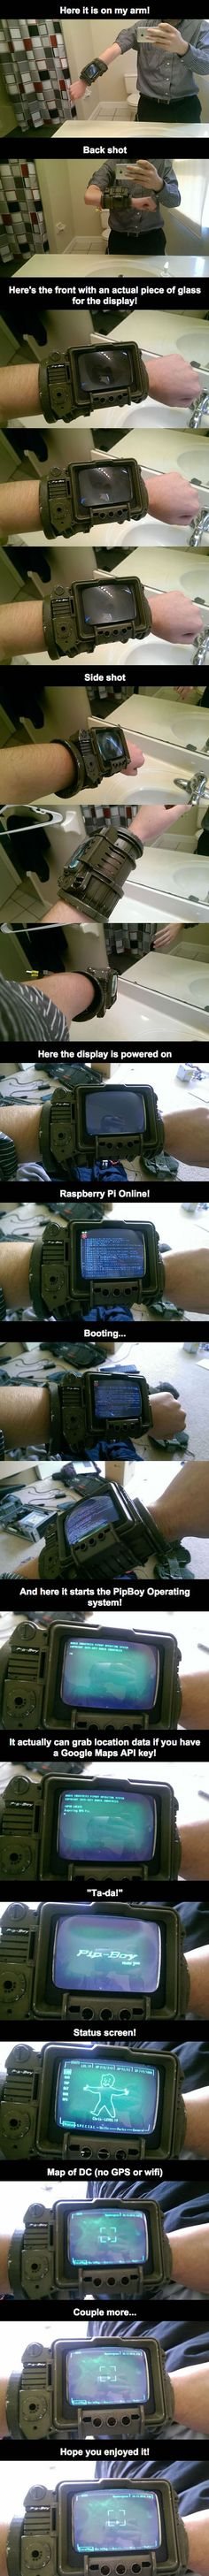 PipBoy 3000A using Rasberry Pi